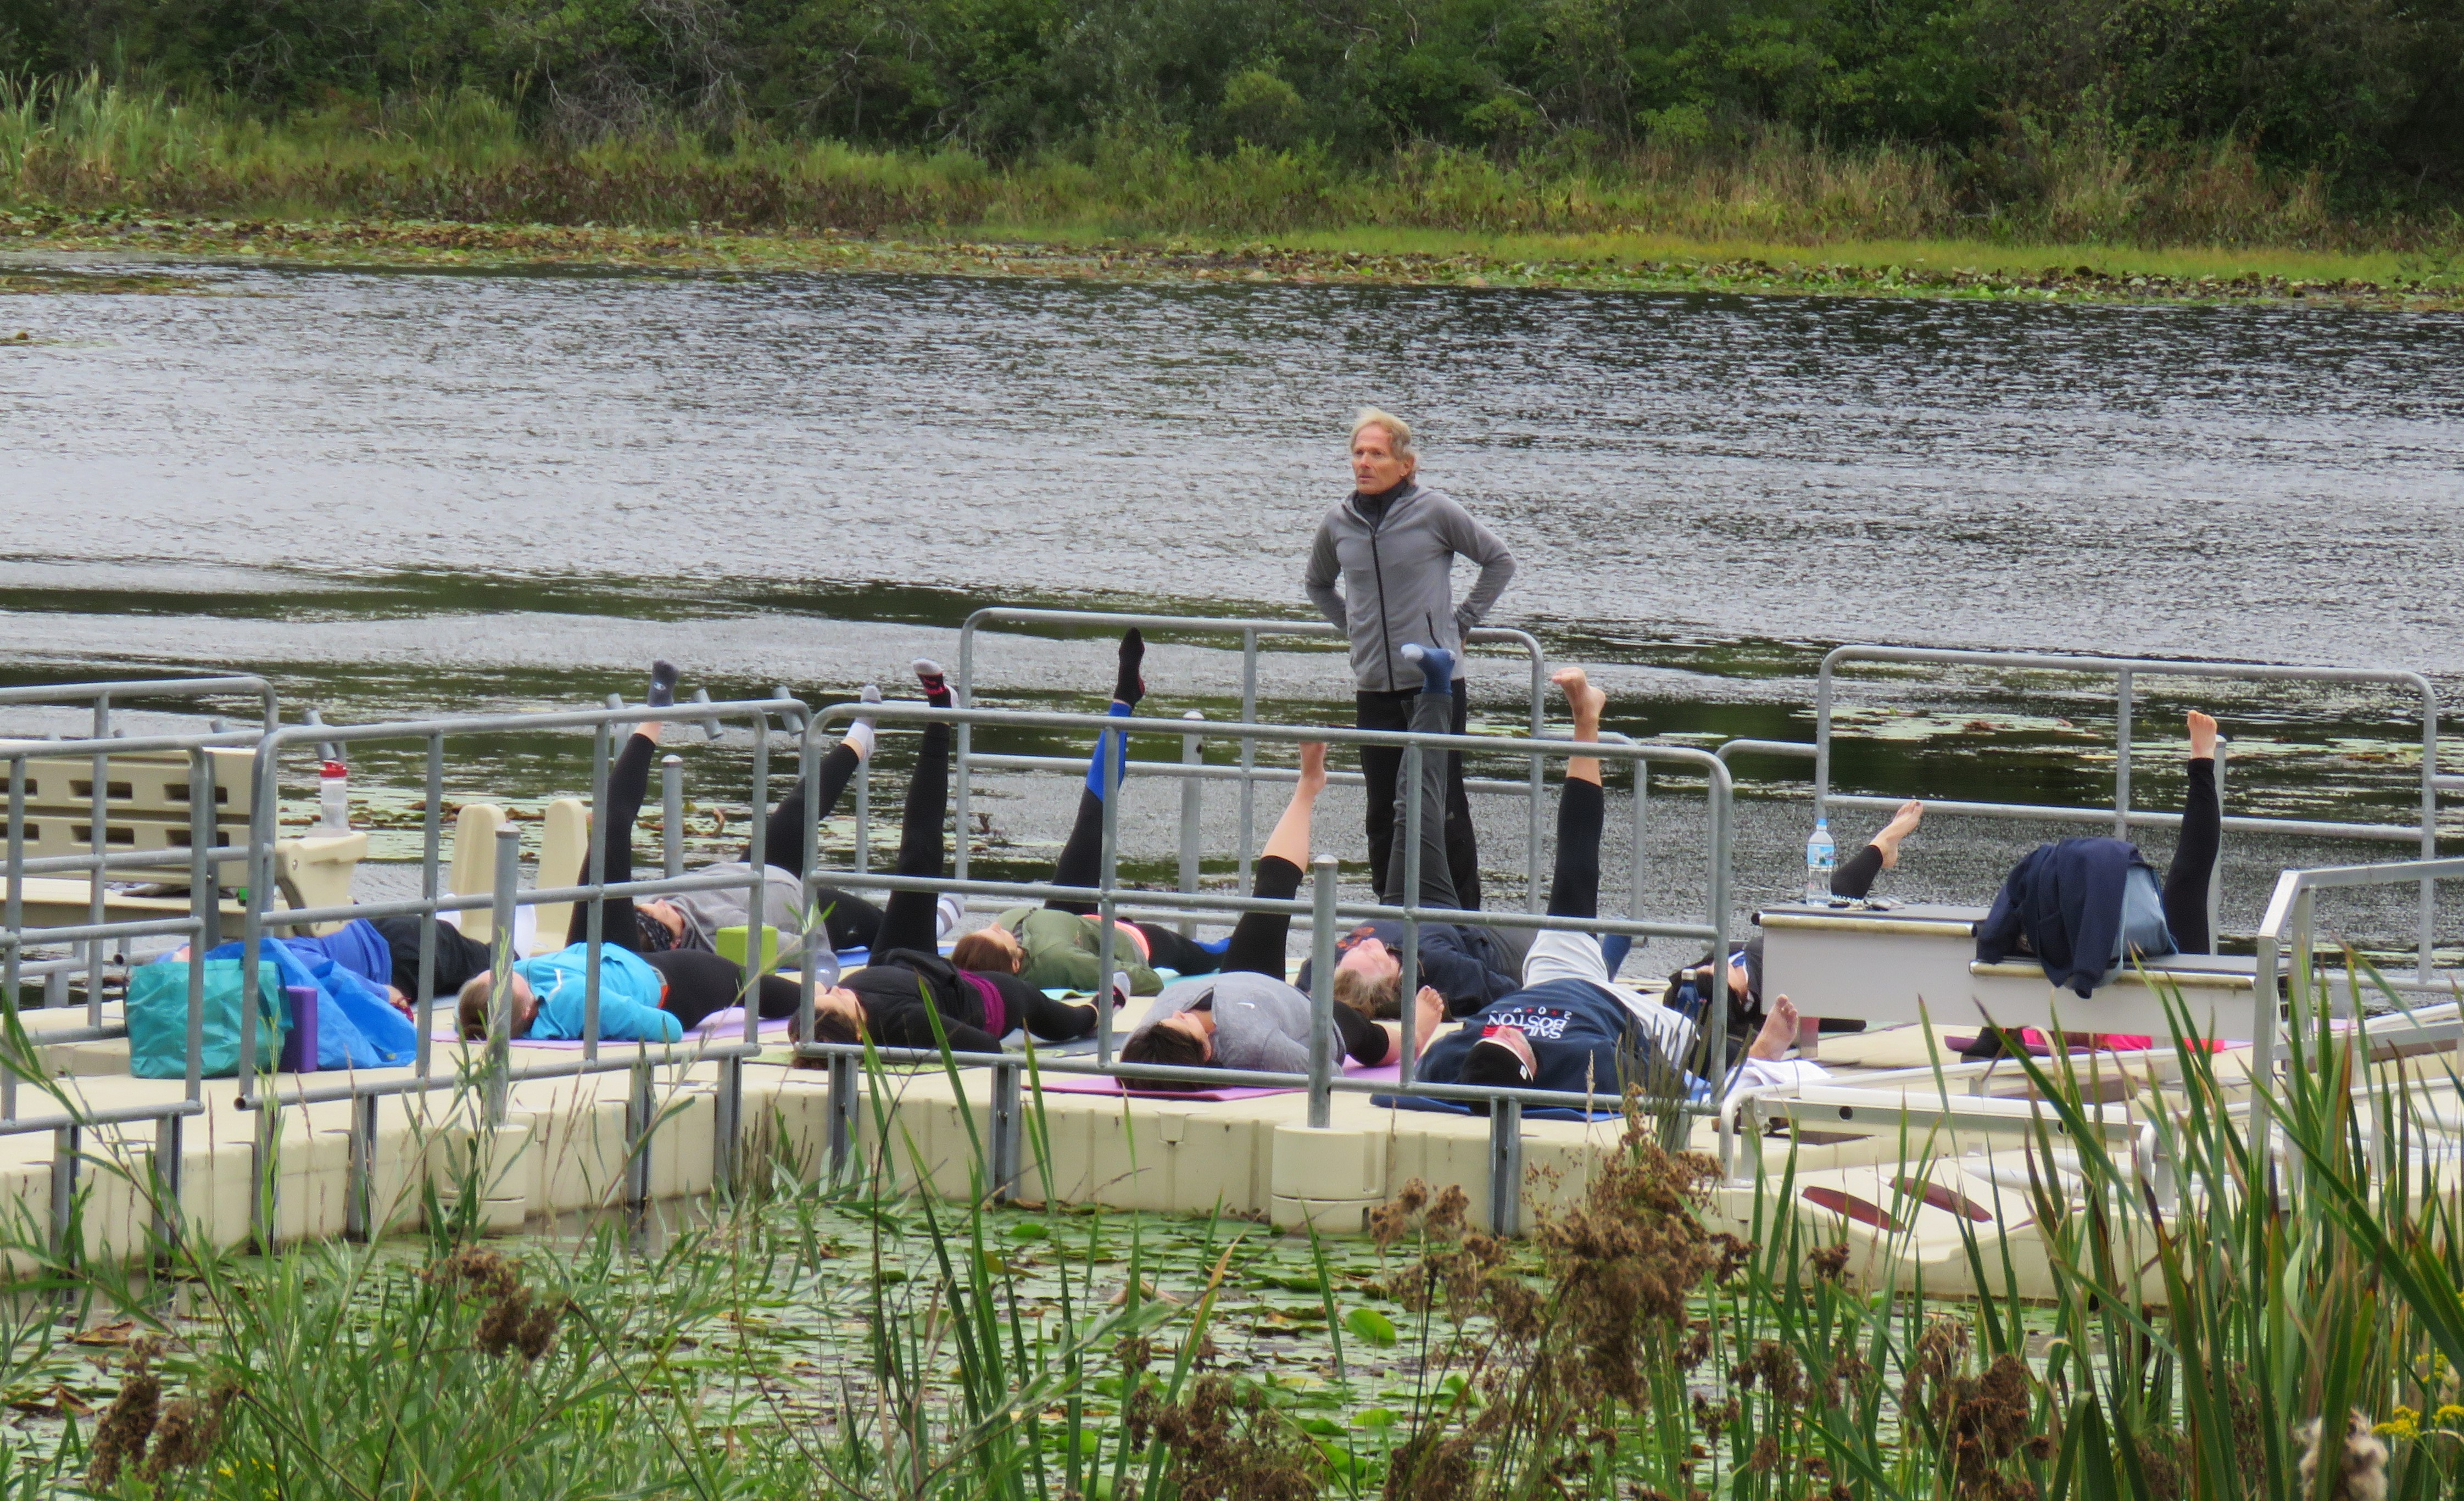 A fitness instructor stands on a dock at Lost Lake Nature Preserve while class attendees practice yoga on mats spread along the dock.